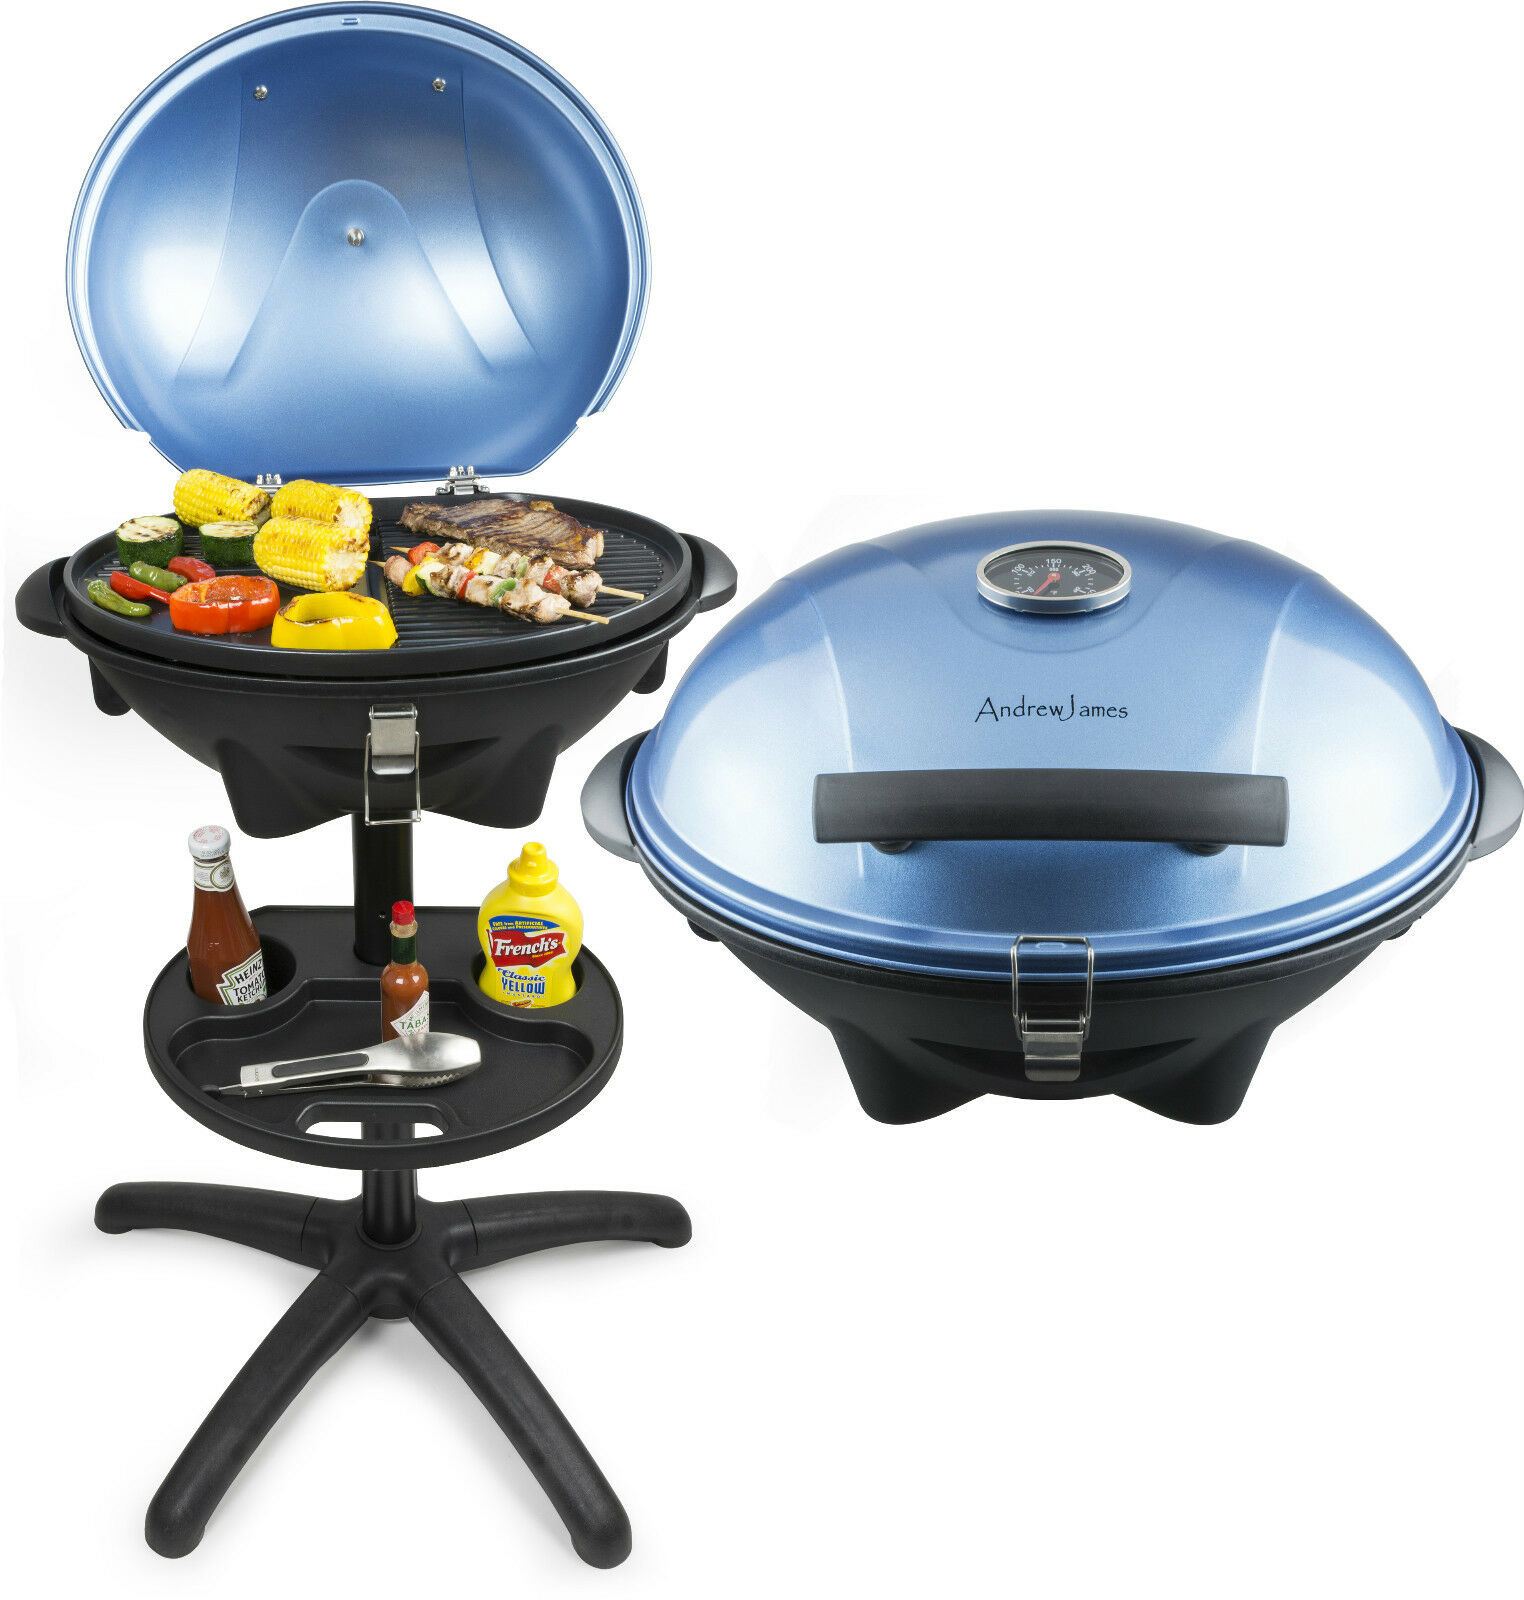 Small Electric Grills Outdoor ~ Andrew james portable blue electric bbq grill griddle